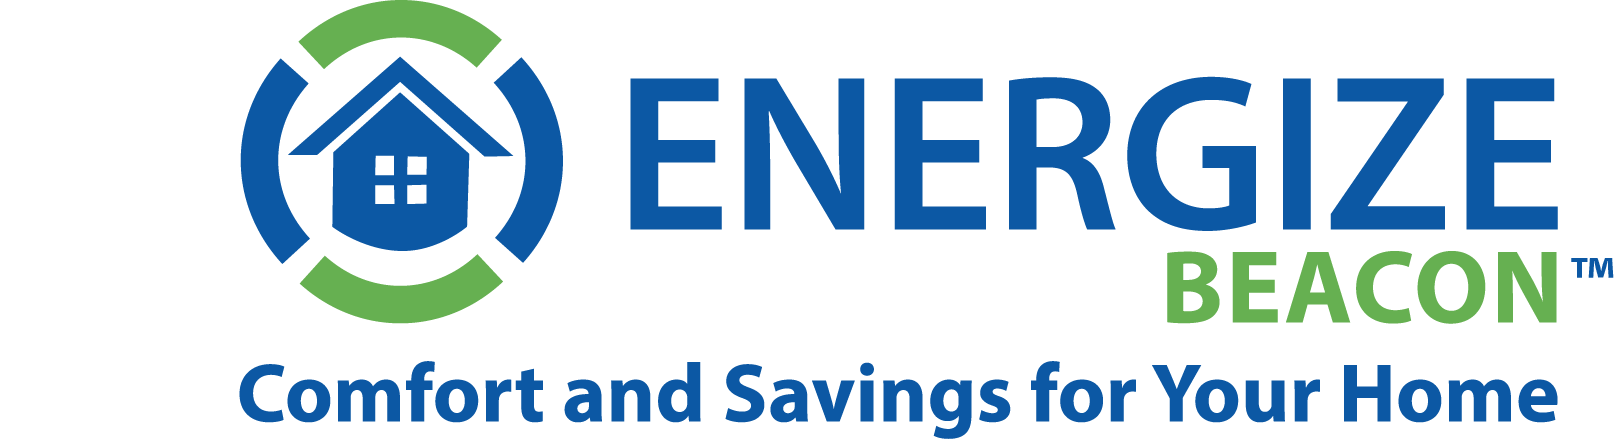 Energize_NY_Finance,_no_background-11 RE.png